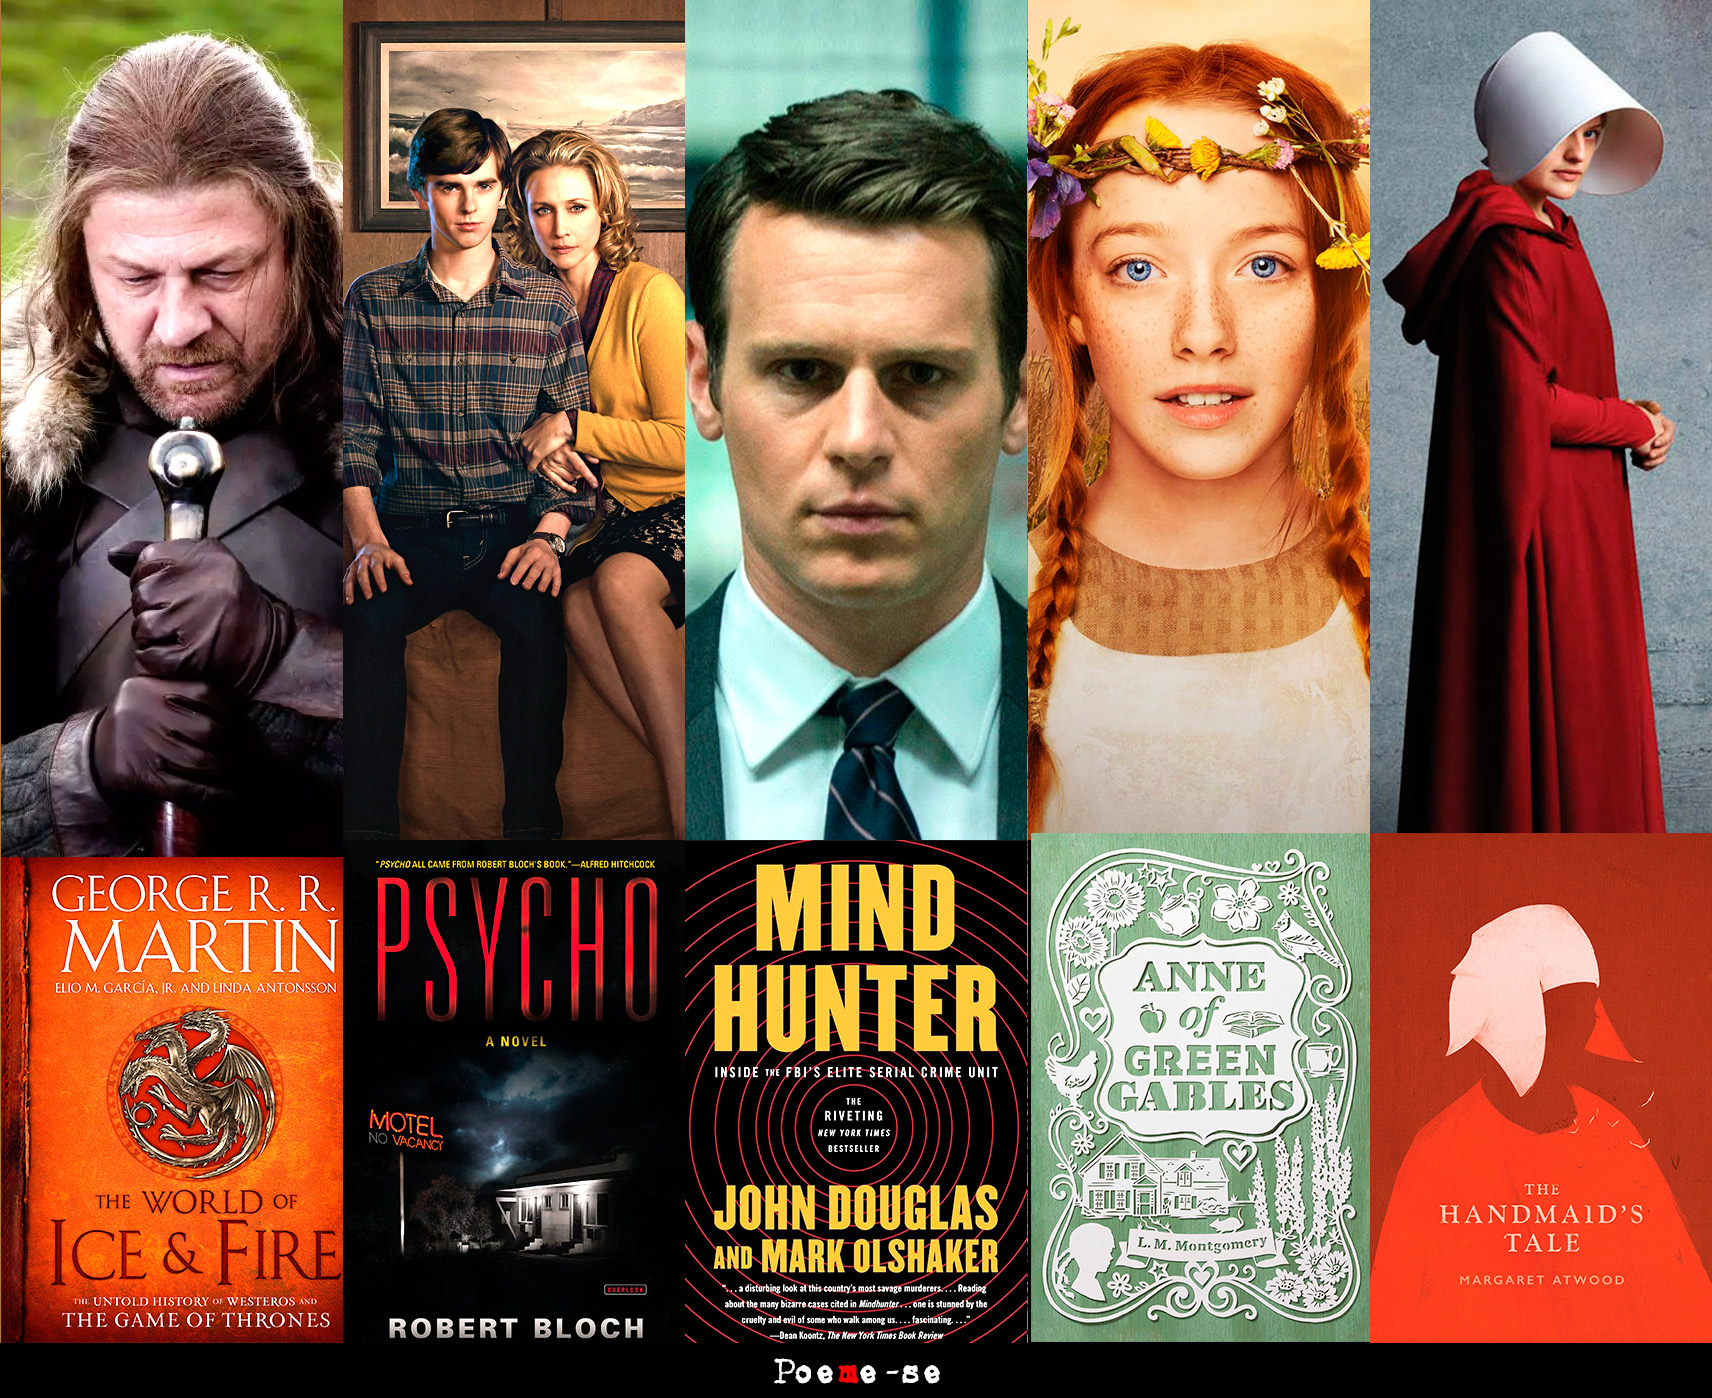 banner 5 séries baseadas em livro, game of thrones, anne, mindhunter, bates motel e handmaid's tale